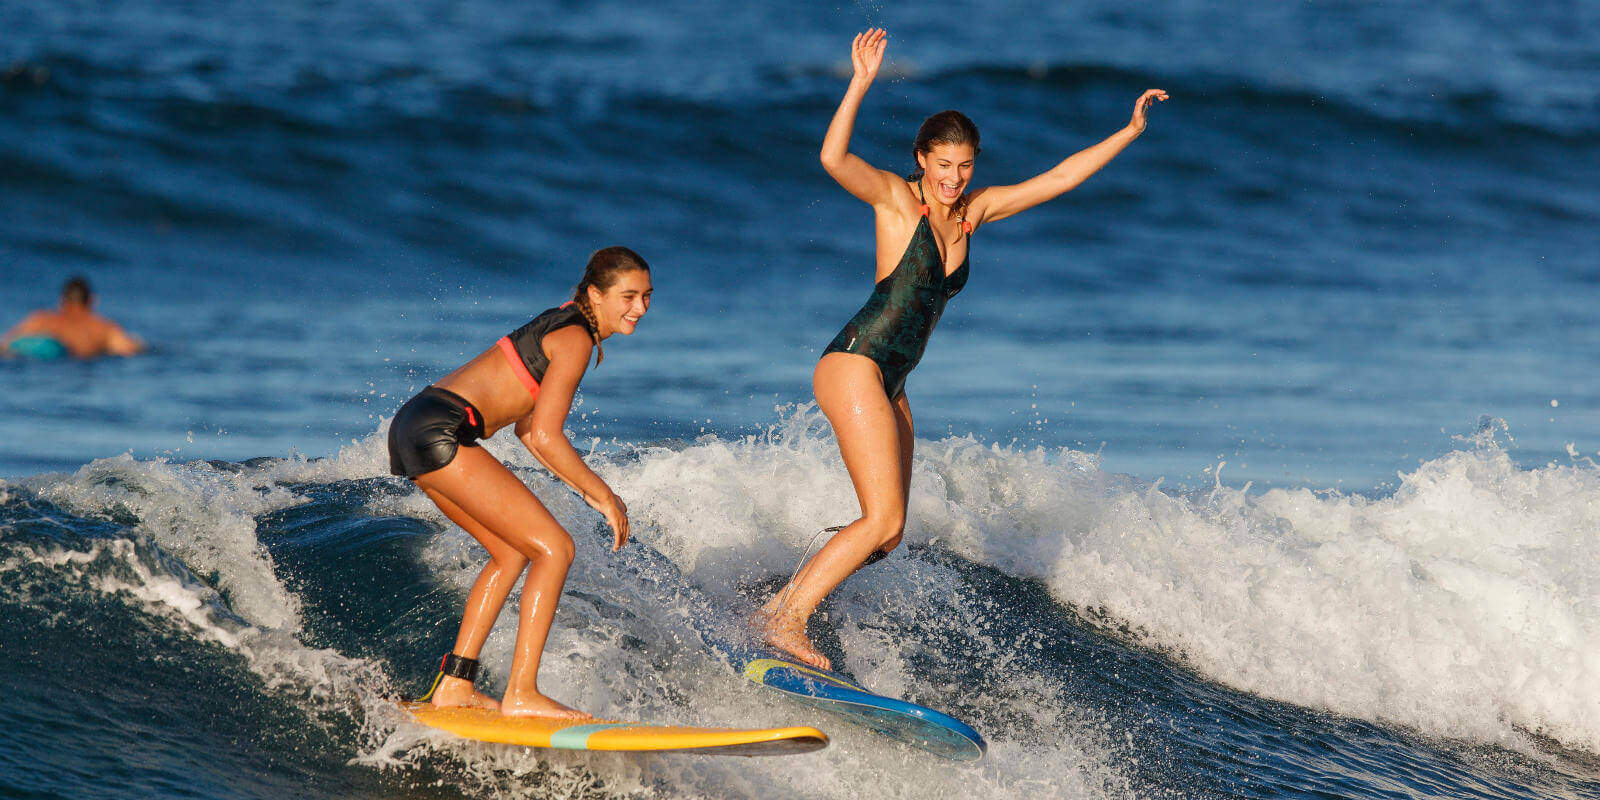 THE RULES IN PRIORITY FOR SURFING AND BODYBOARDING